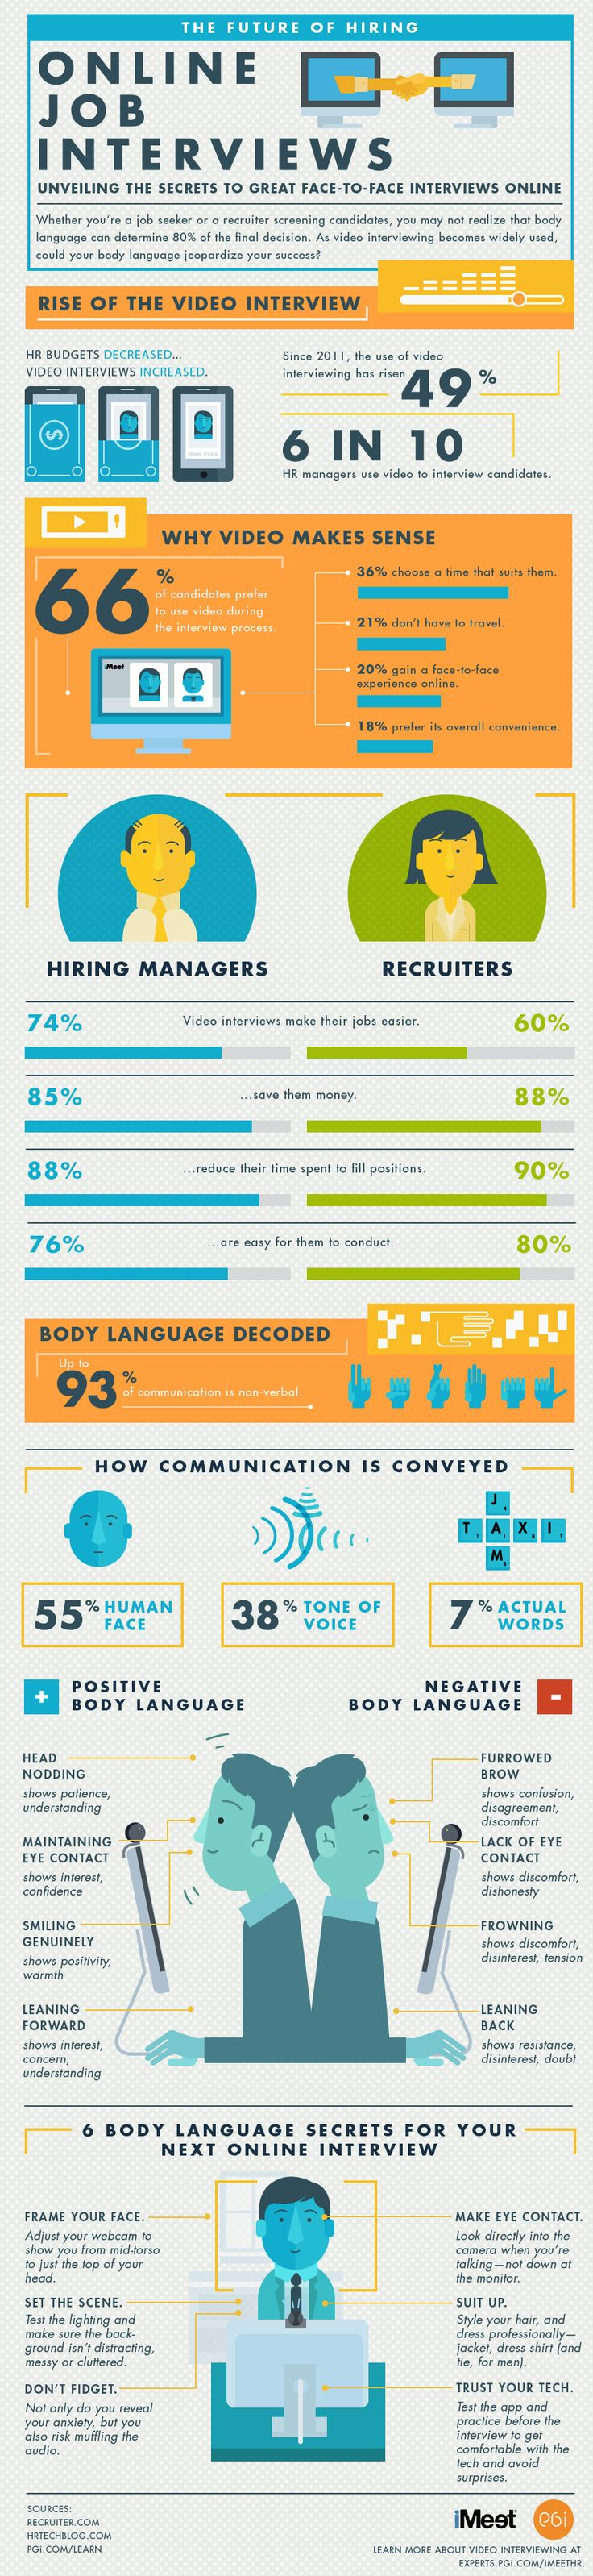 Why Online is the Future of Job Interviewing [INFOGRAPHIC] on http://theundercoverrecruiter.com